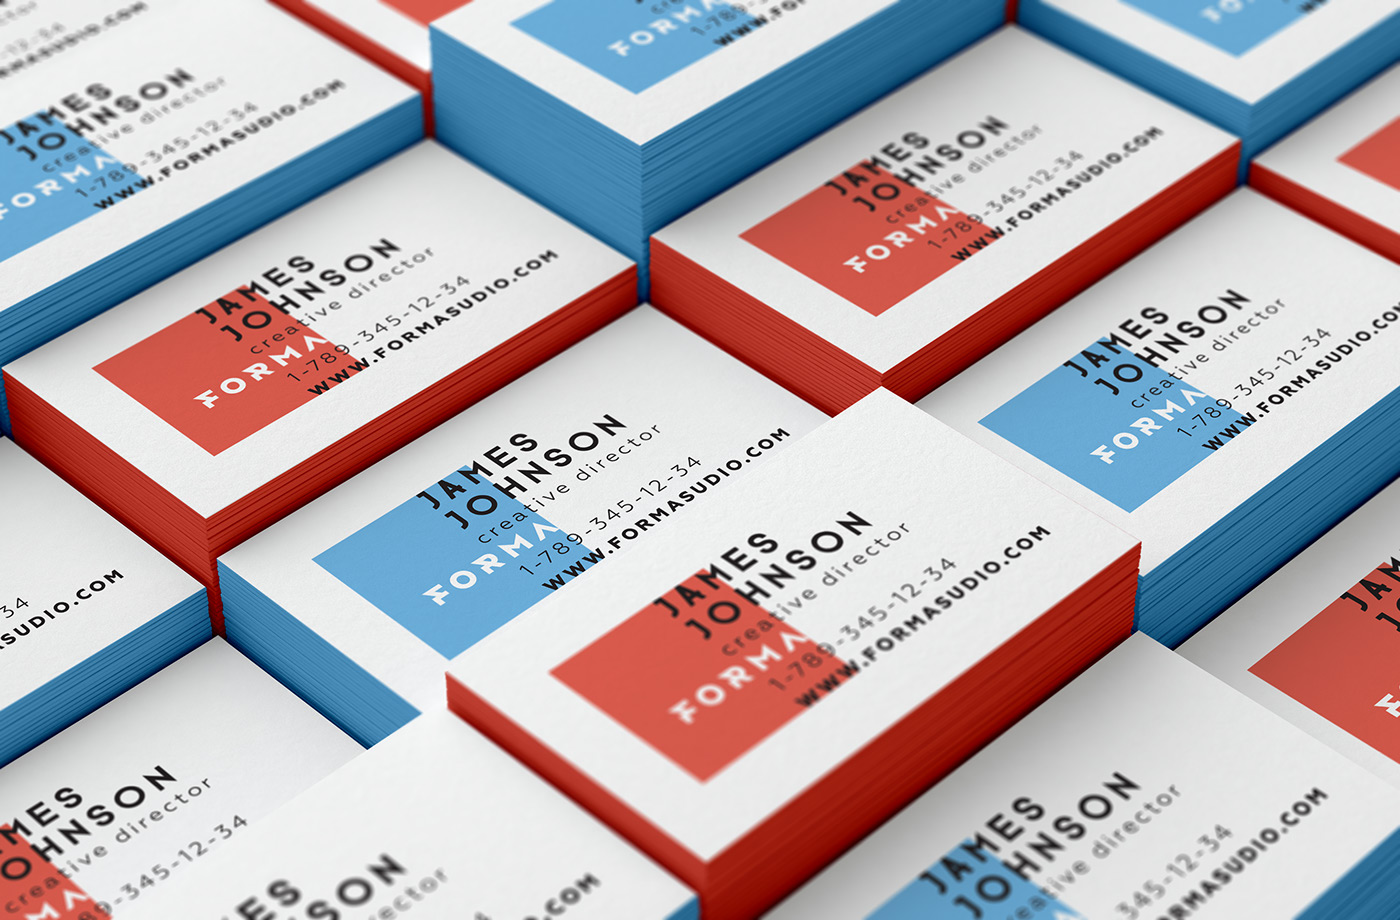 Business cards mockups pack vol 1 on behance this is mockups for business cards hi res customizable easy to use and really cool looking here we have 10 premium mockups and 2 more absolutely free reheart Image collections